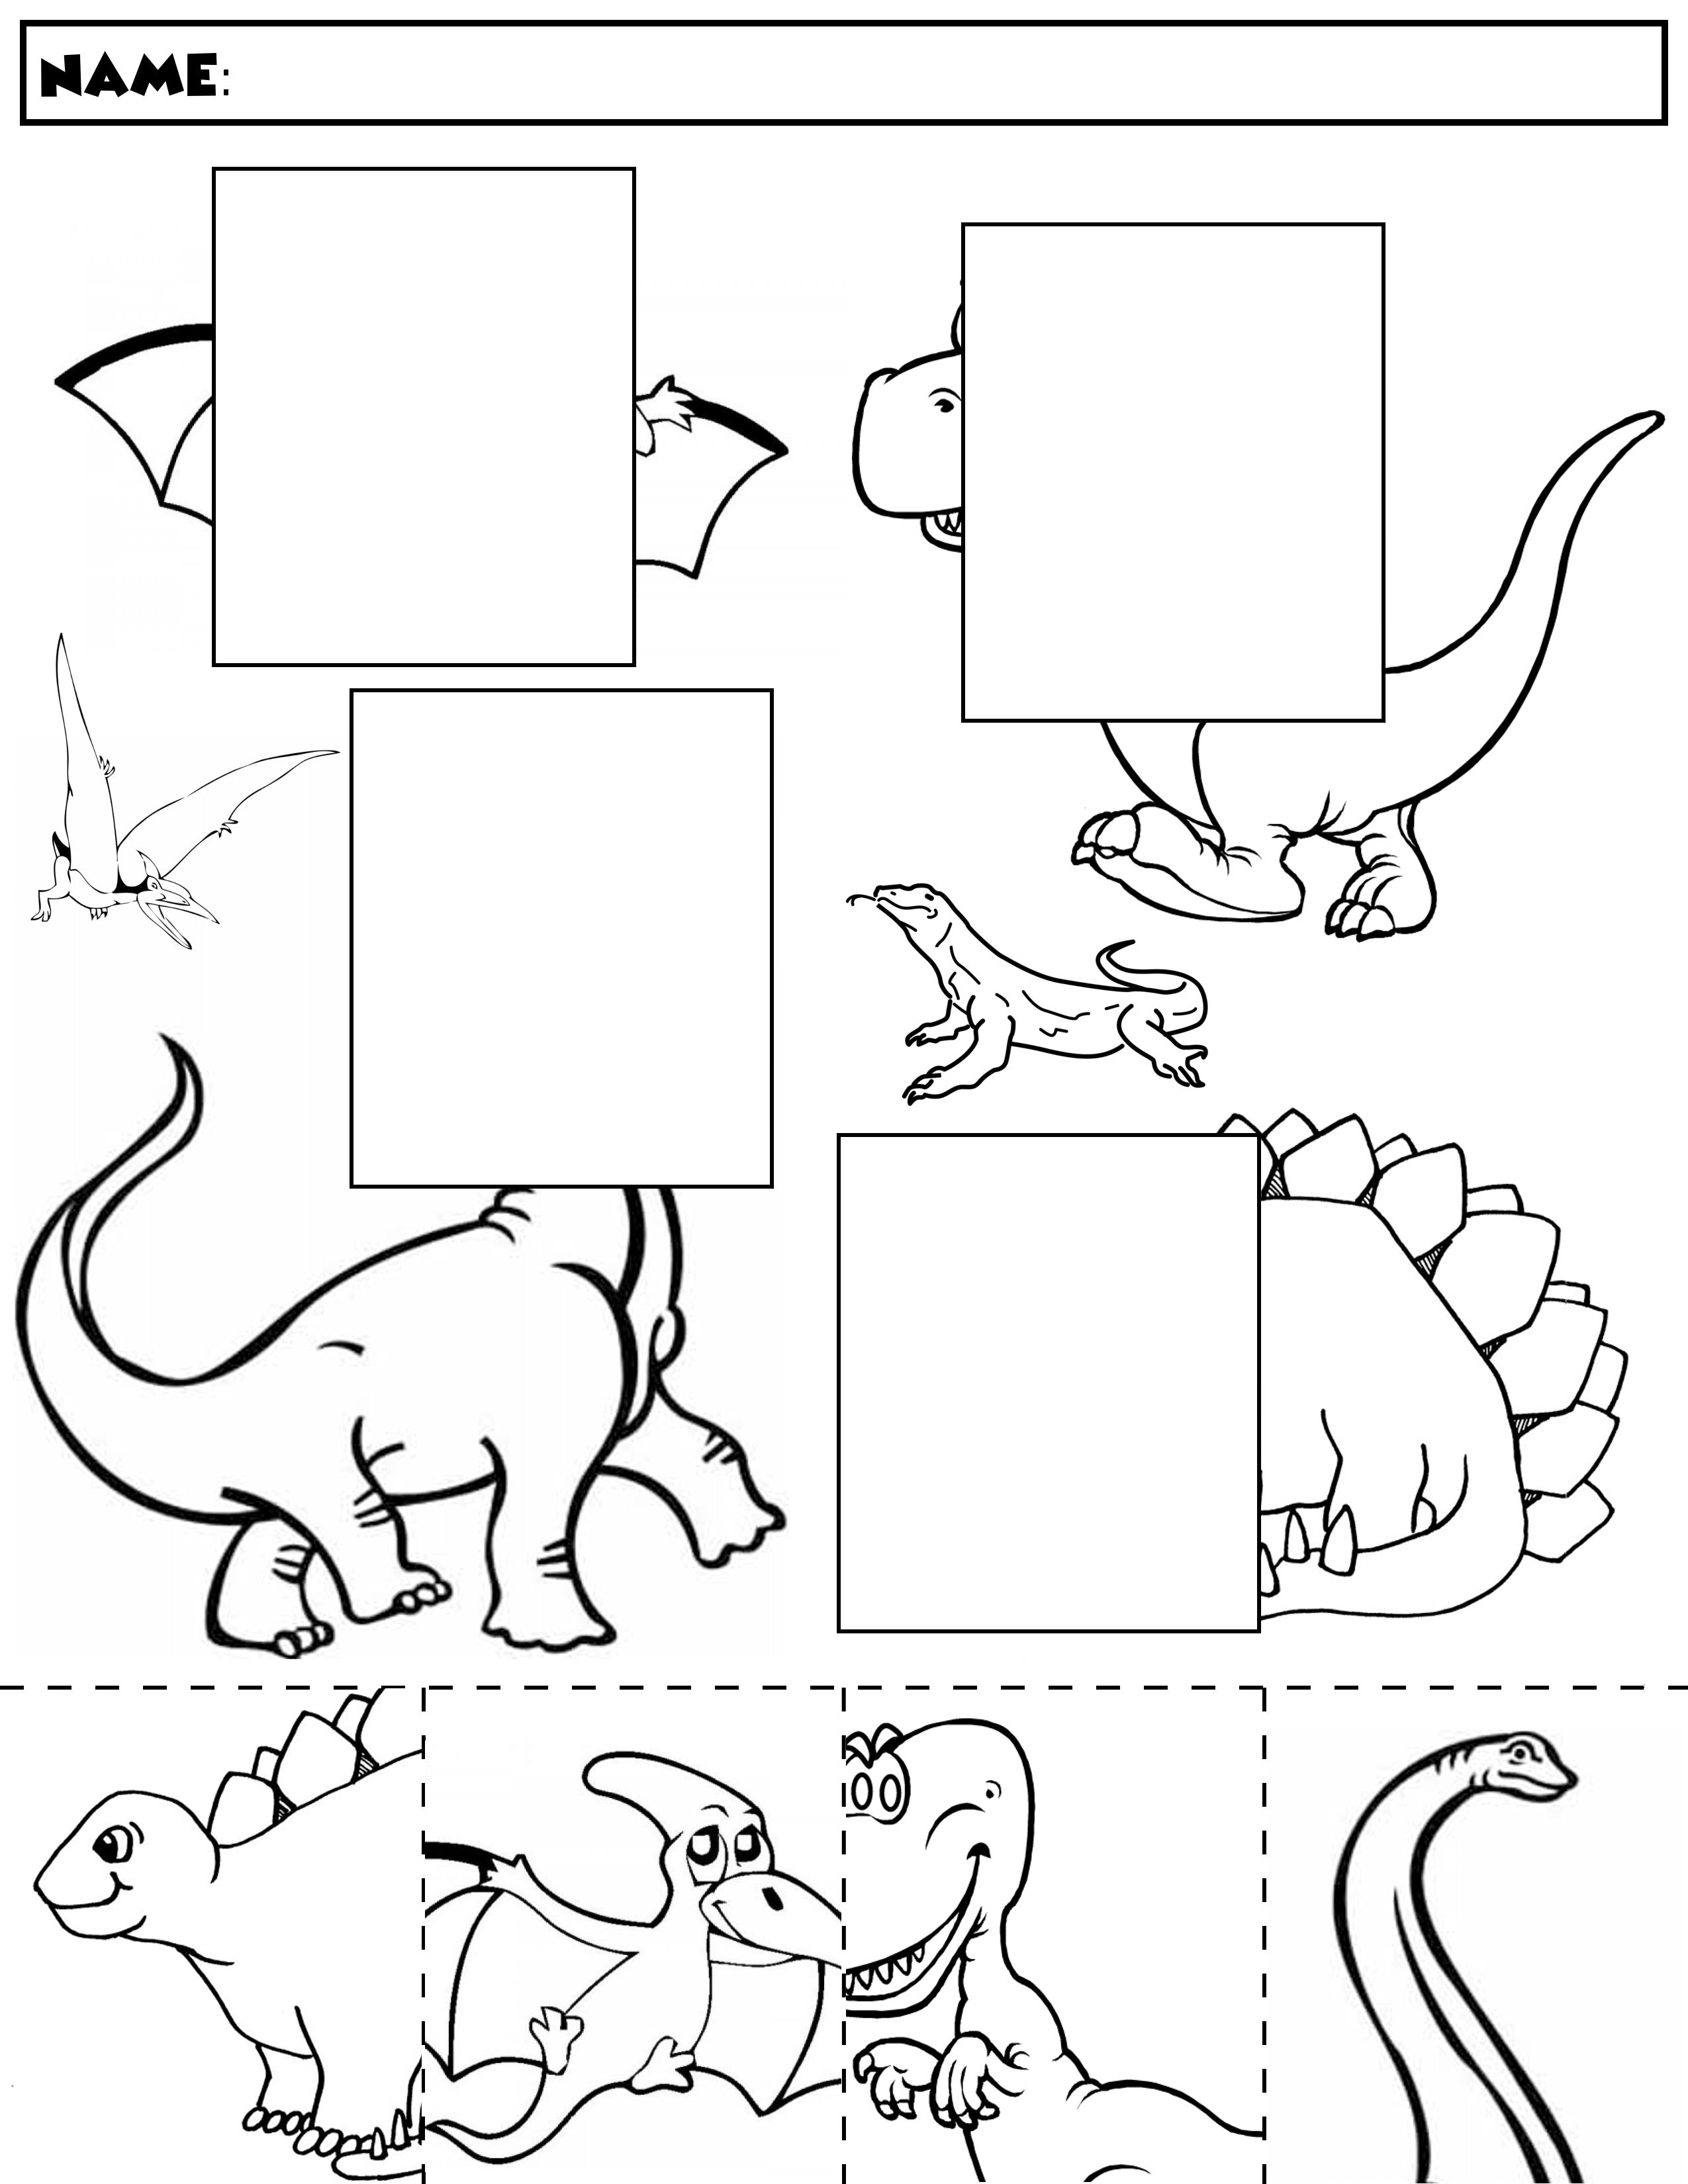 Coloriage Magique Jurassic World.Coloriage Jurassic World Dinosaur Color And Match Group 1 Nouveau Of